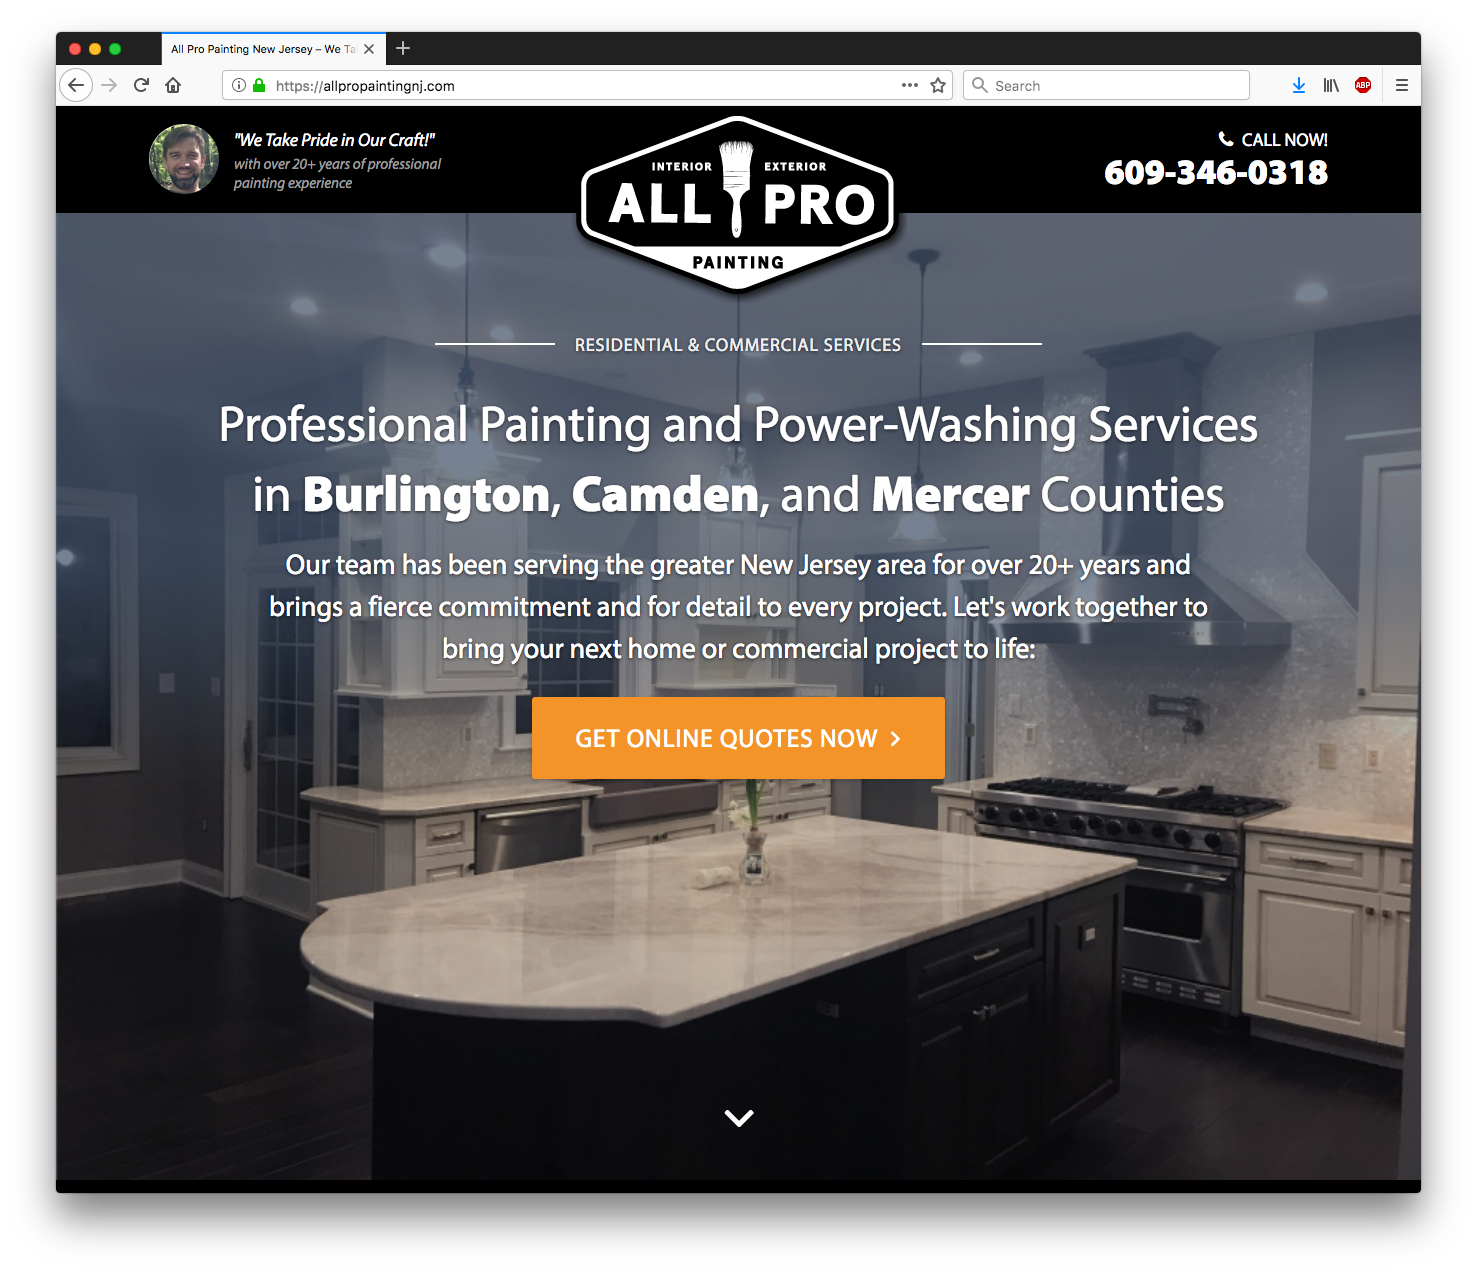 All-Pro painting